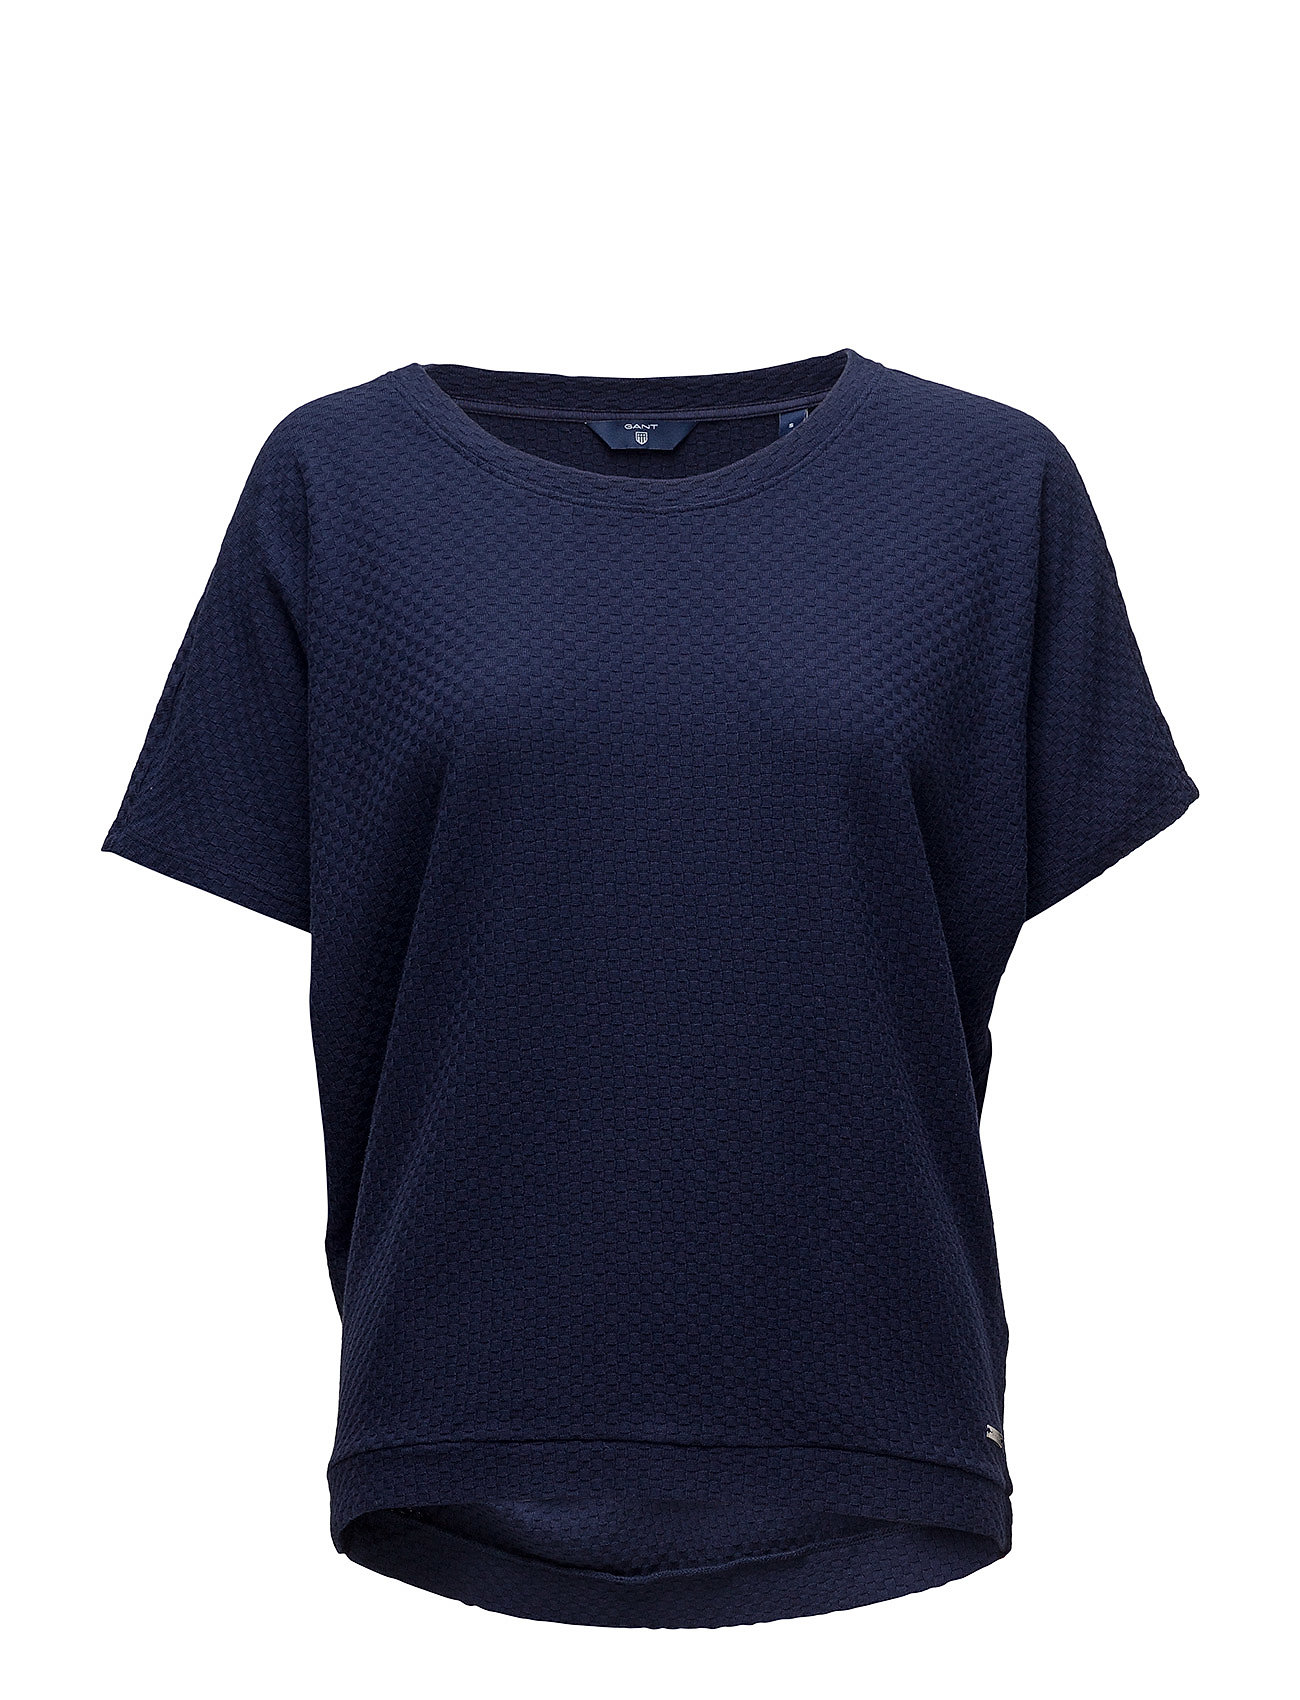 Gant O1. SMALL SQUARE PATTERN C-NECK TOP - EVENING BLUE